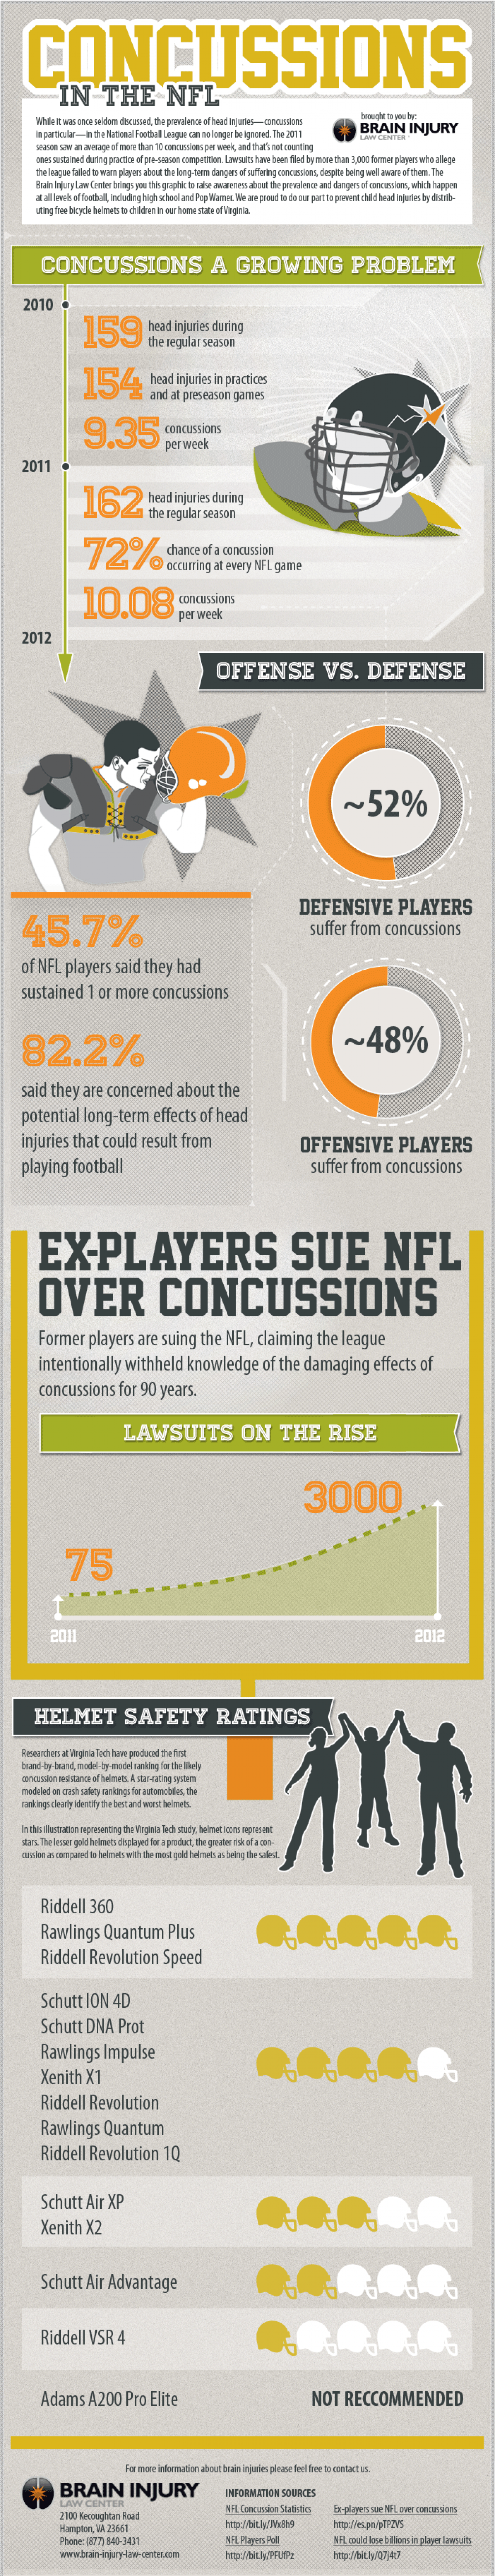 Brain Injury in the NFL Infographic